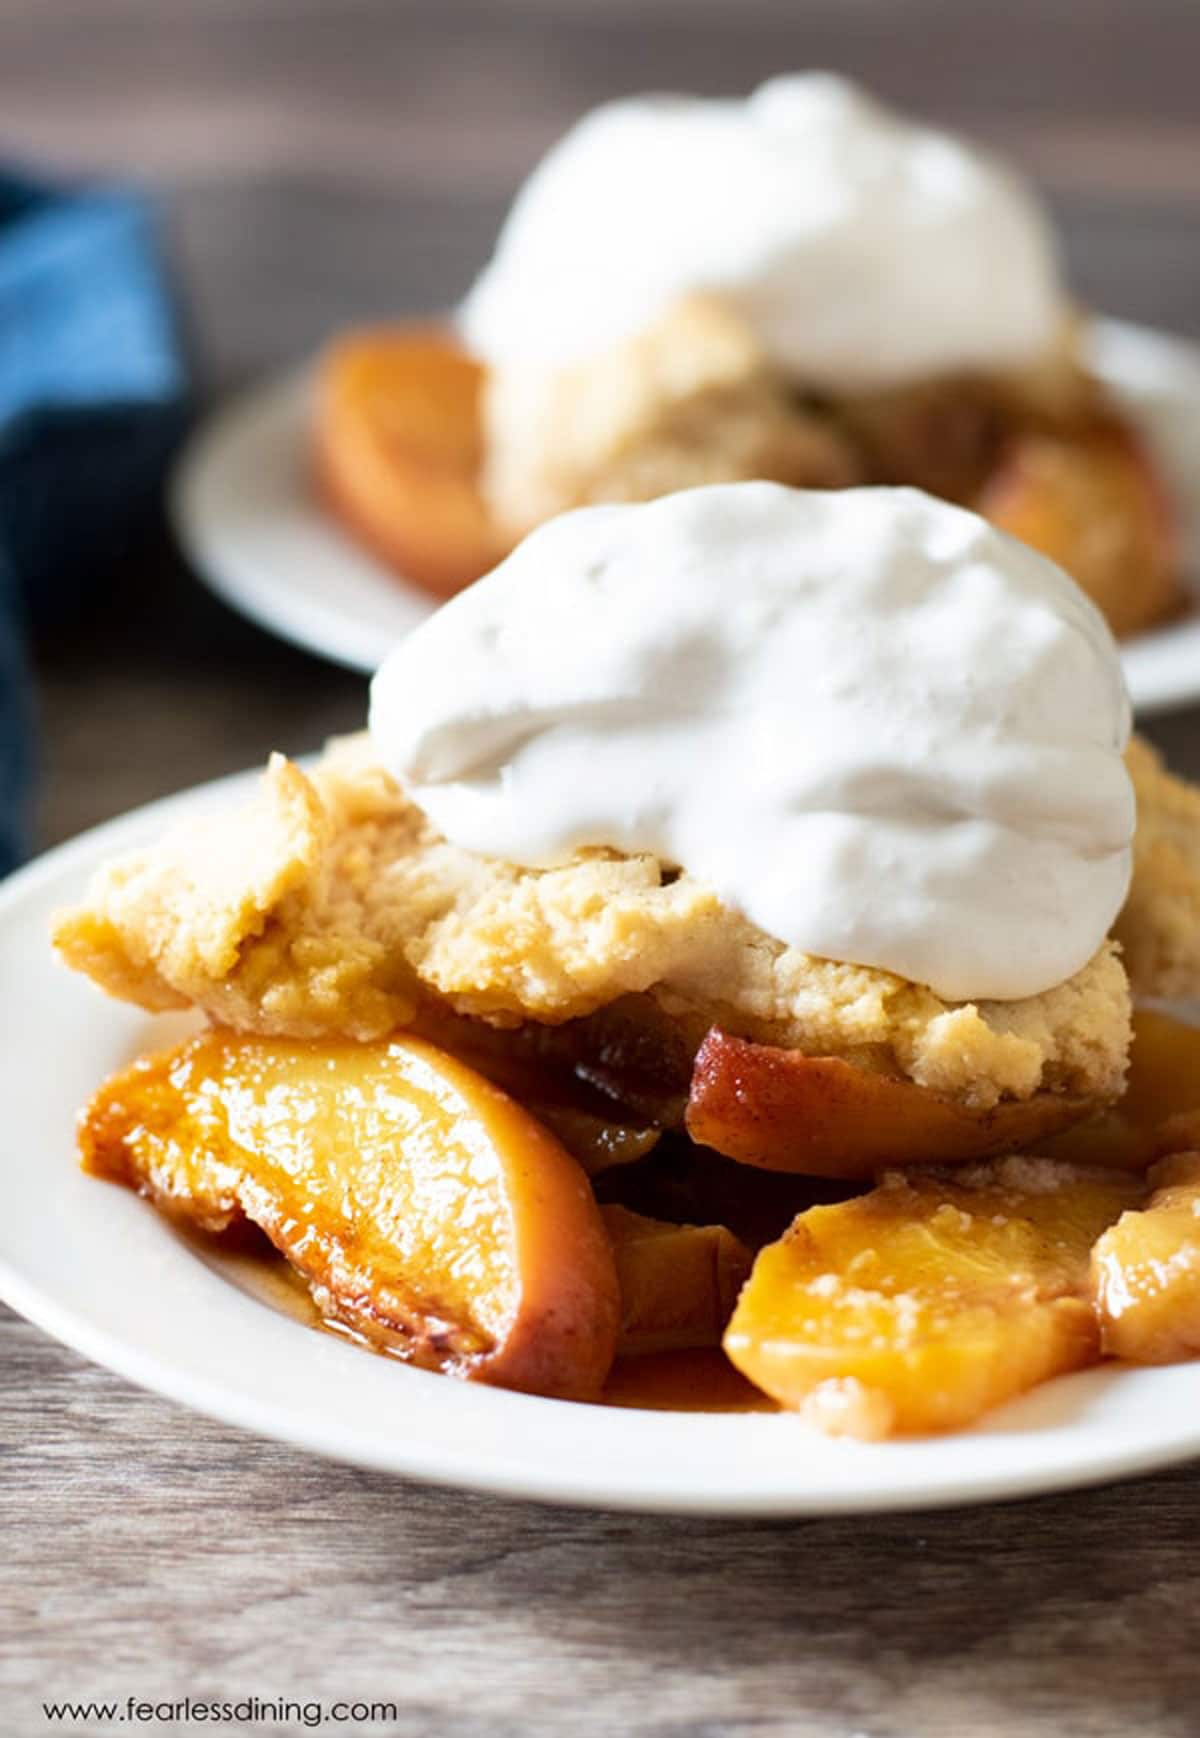 a serving of peach cobbler topped with whipped cream